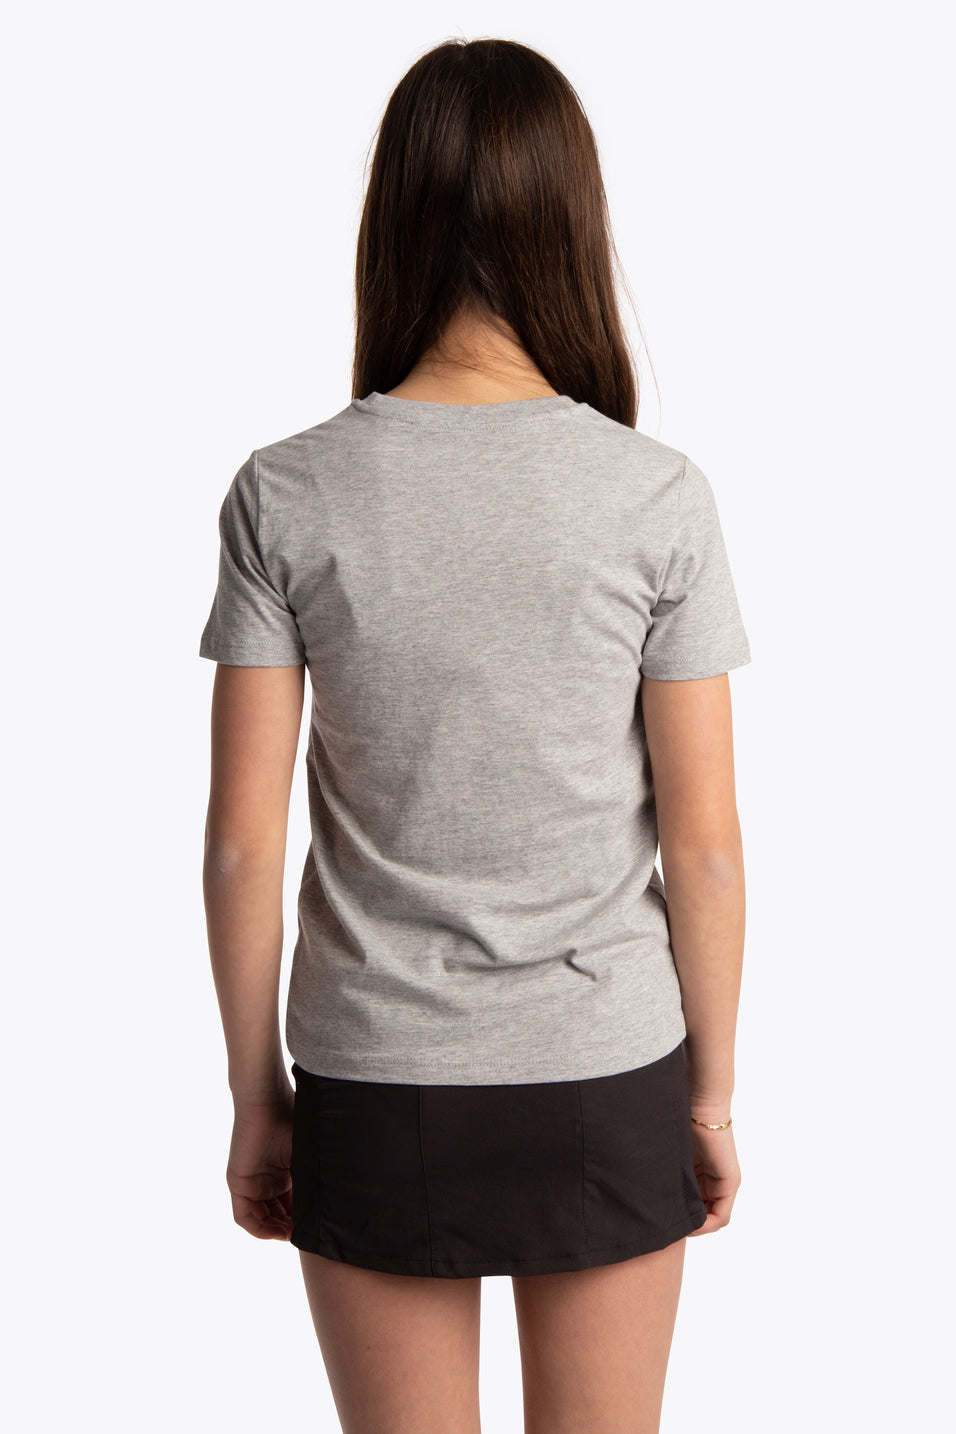 Deshi Tee Green Star - Heather Grey